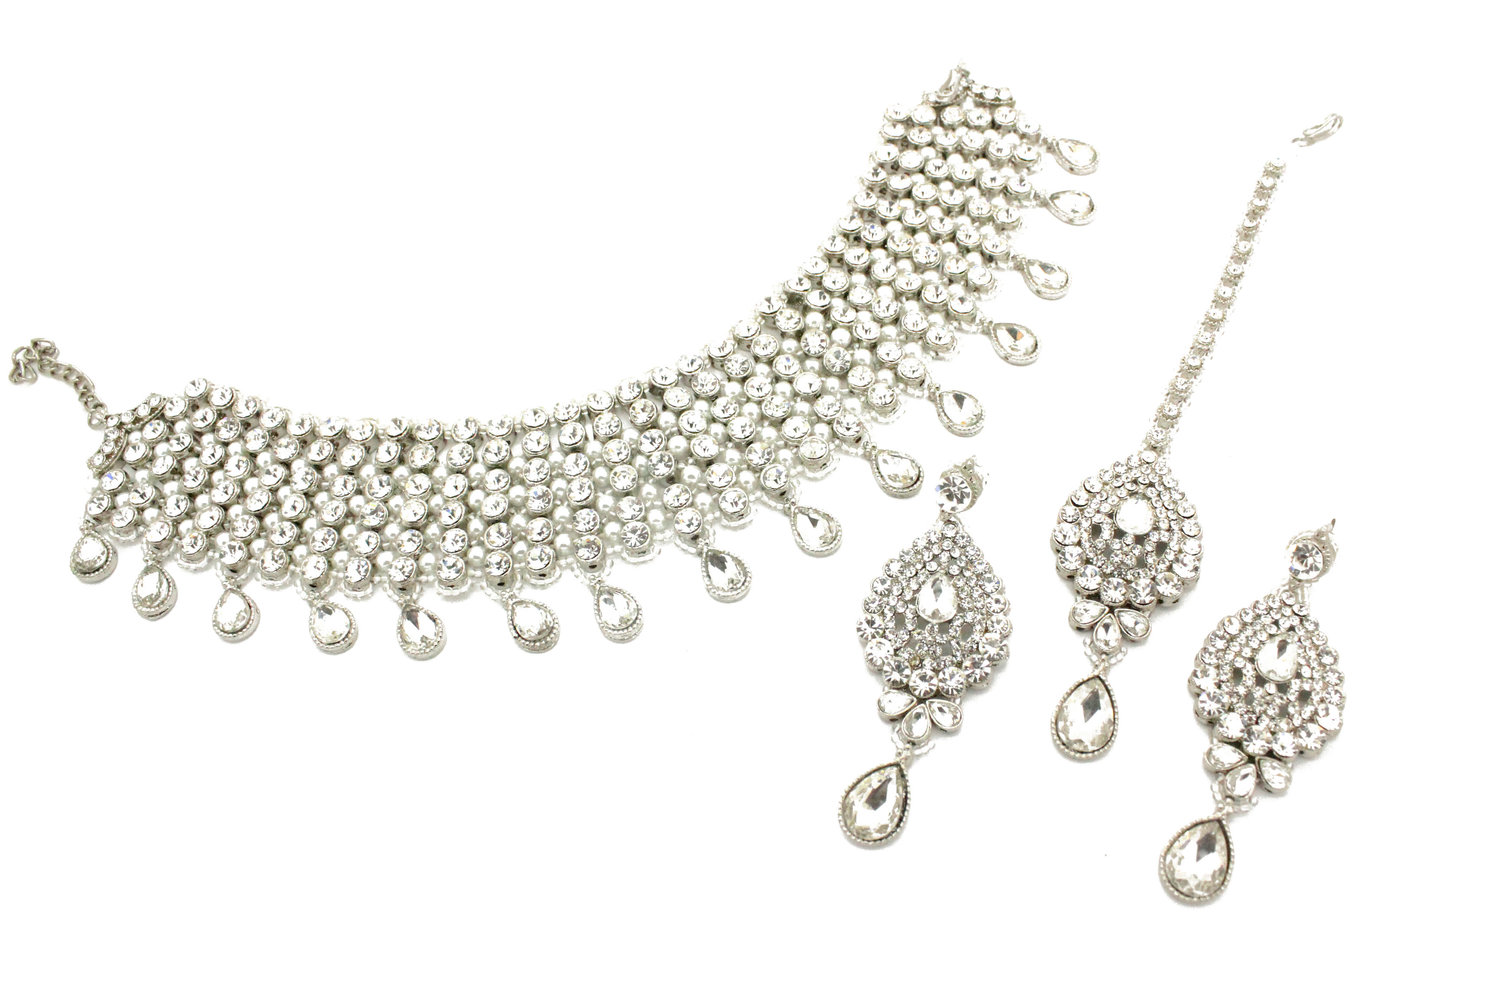 af14a0d721958 Full Silver Kundan 'MIA' Choker Necklace Jewellery Set — Glimour Jewellery